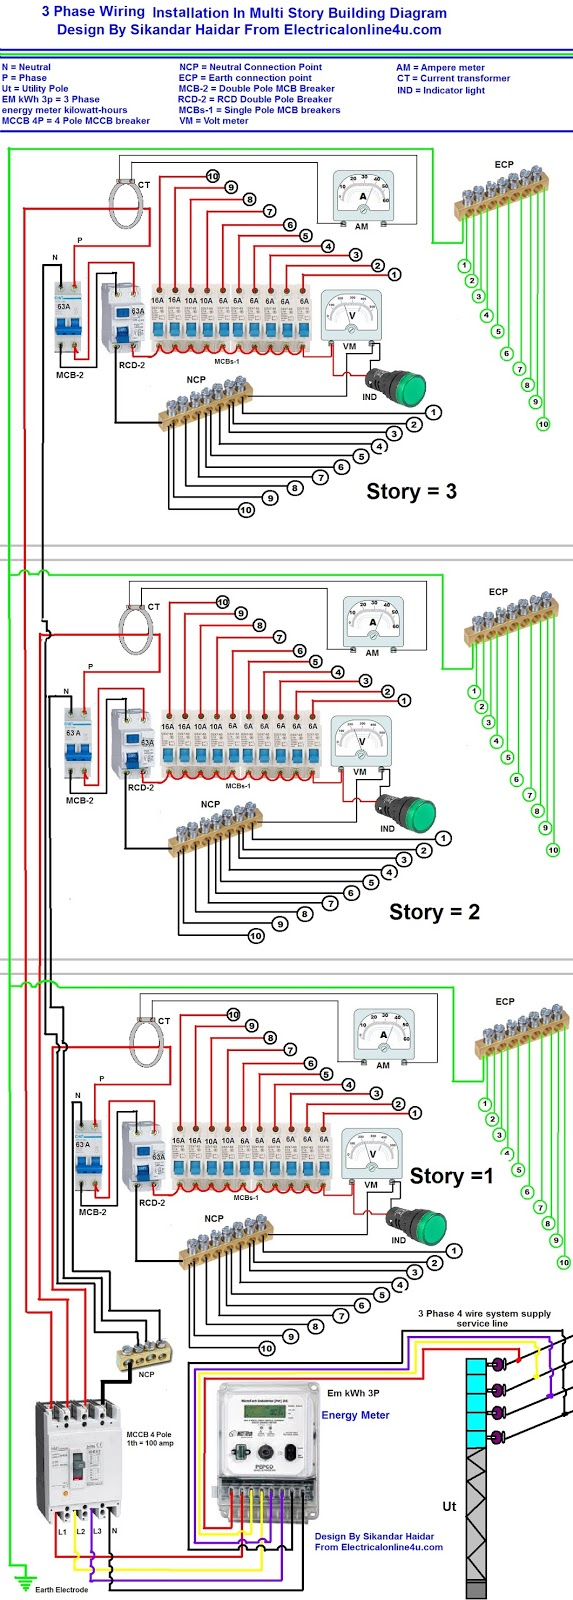 hight resolution of 3 phase distribution board diagram for multi story house building singlephase electrical wiring installation in a multistory building